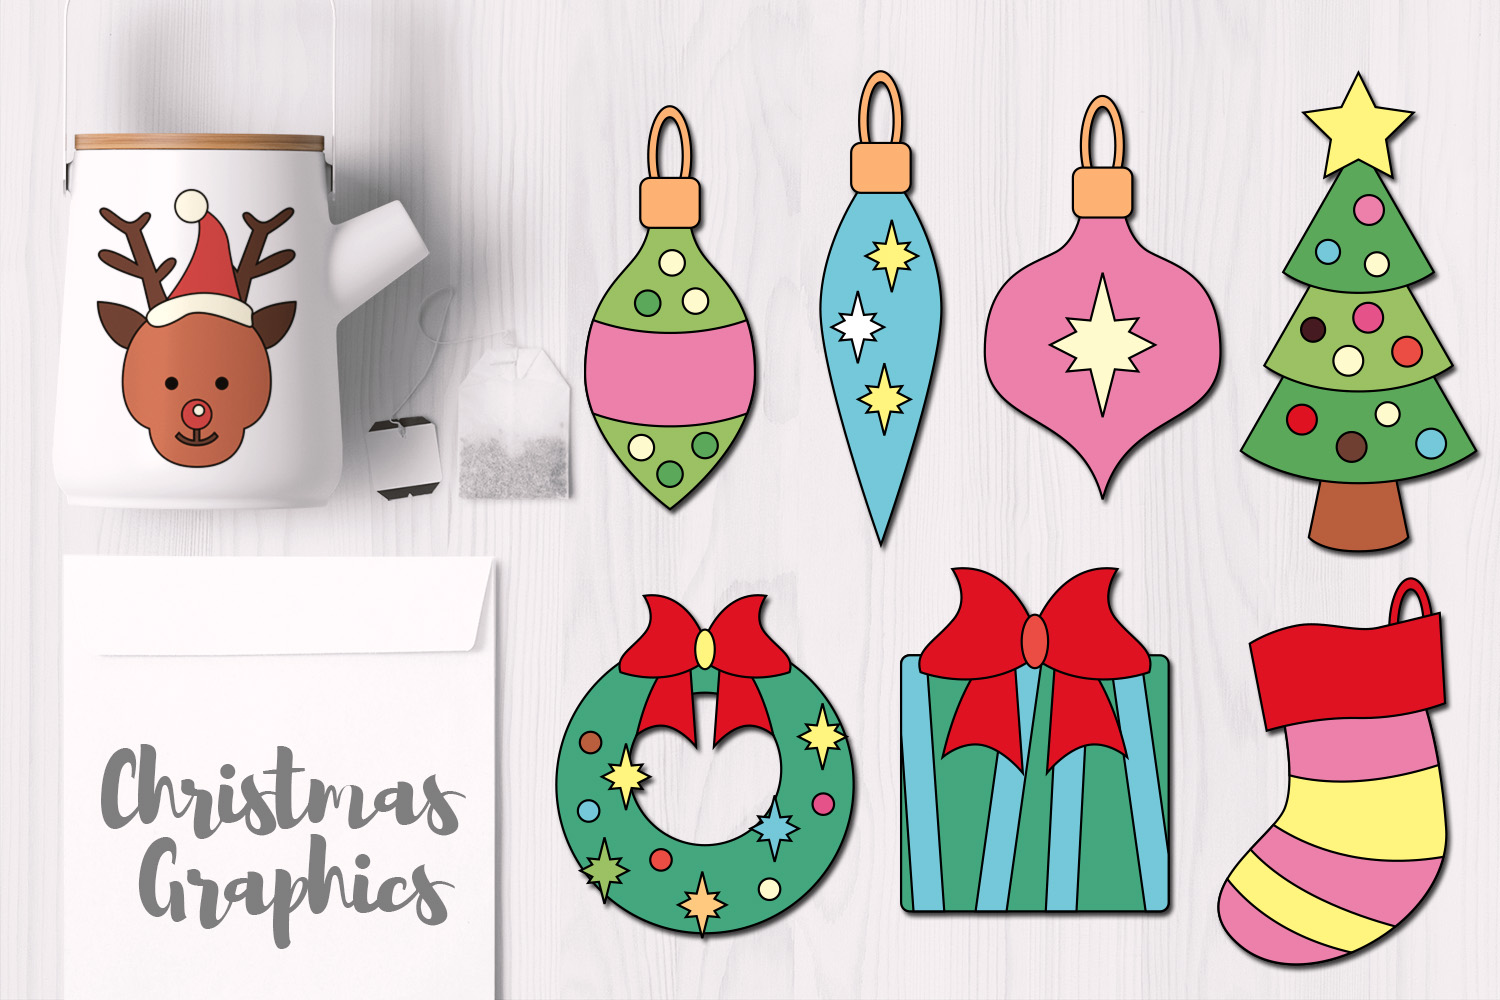 Simple Christmas Objects Ornaments example image 1